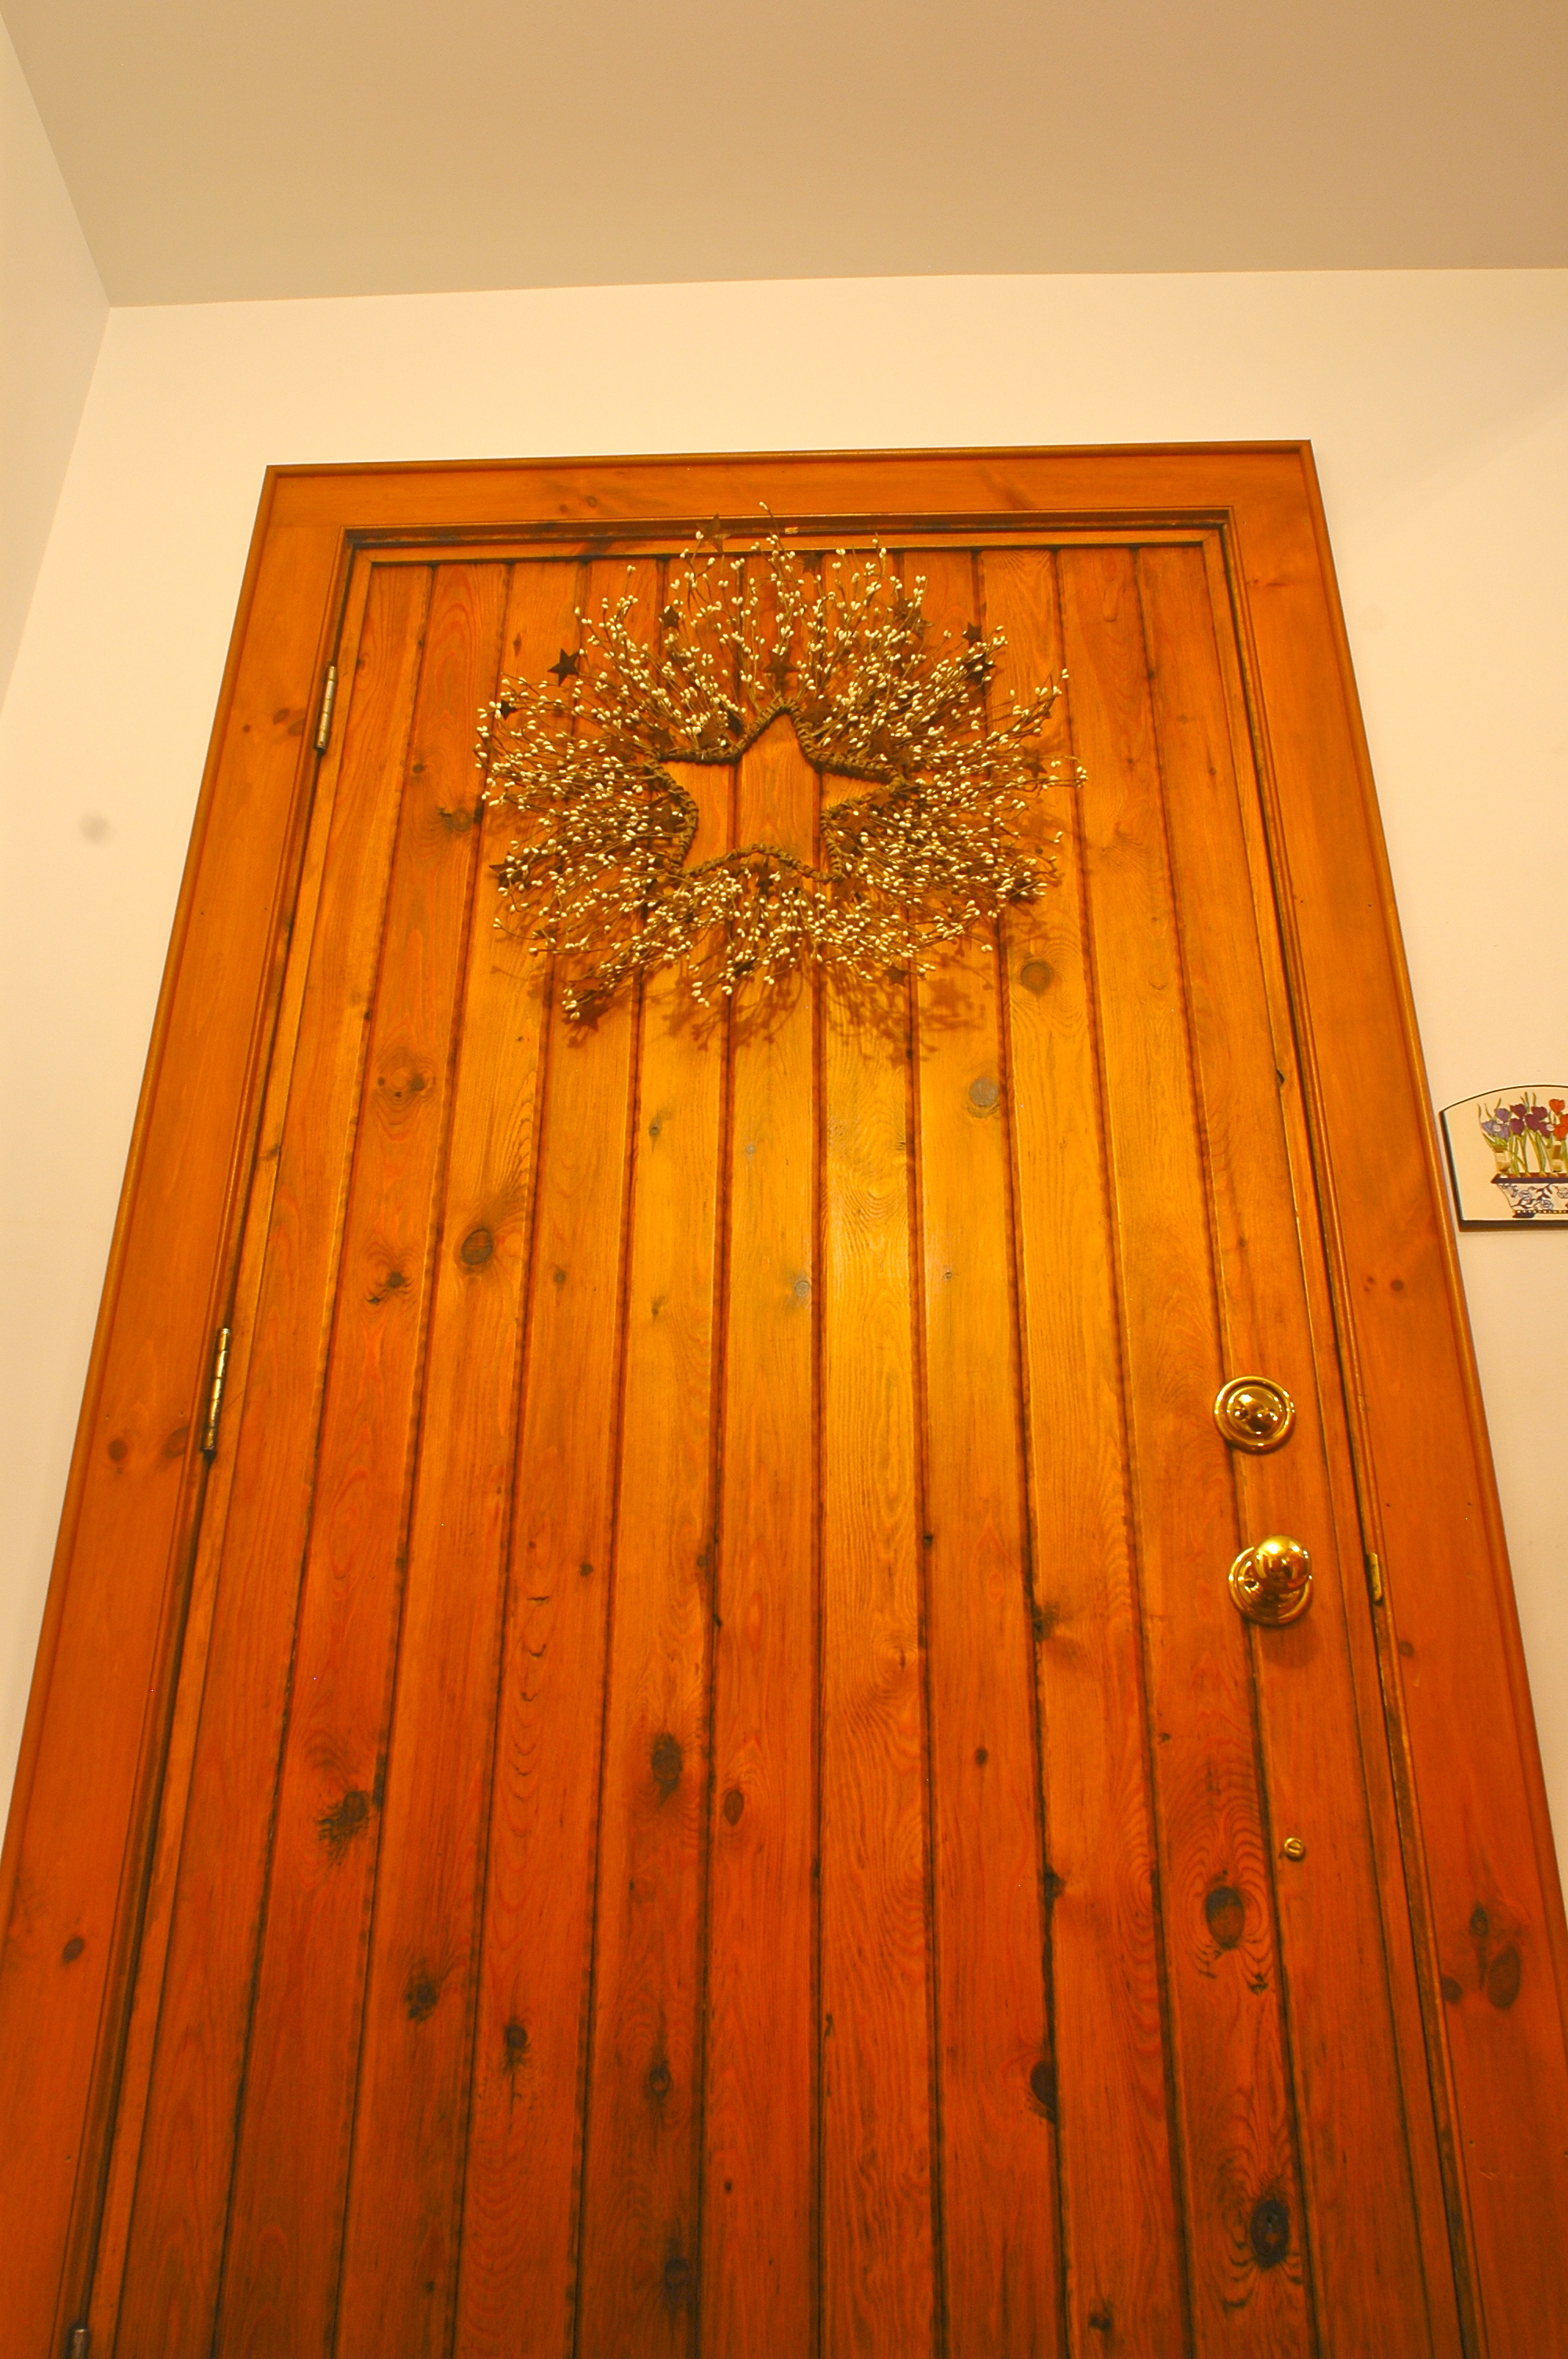 HOWTO Build a Door  Warm Insulated Cozy  Beautiful